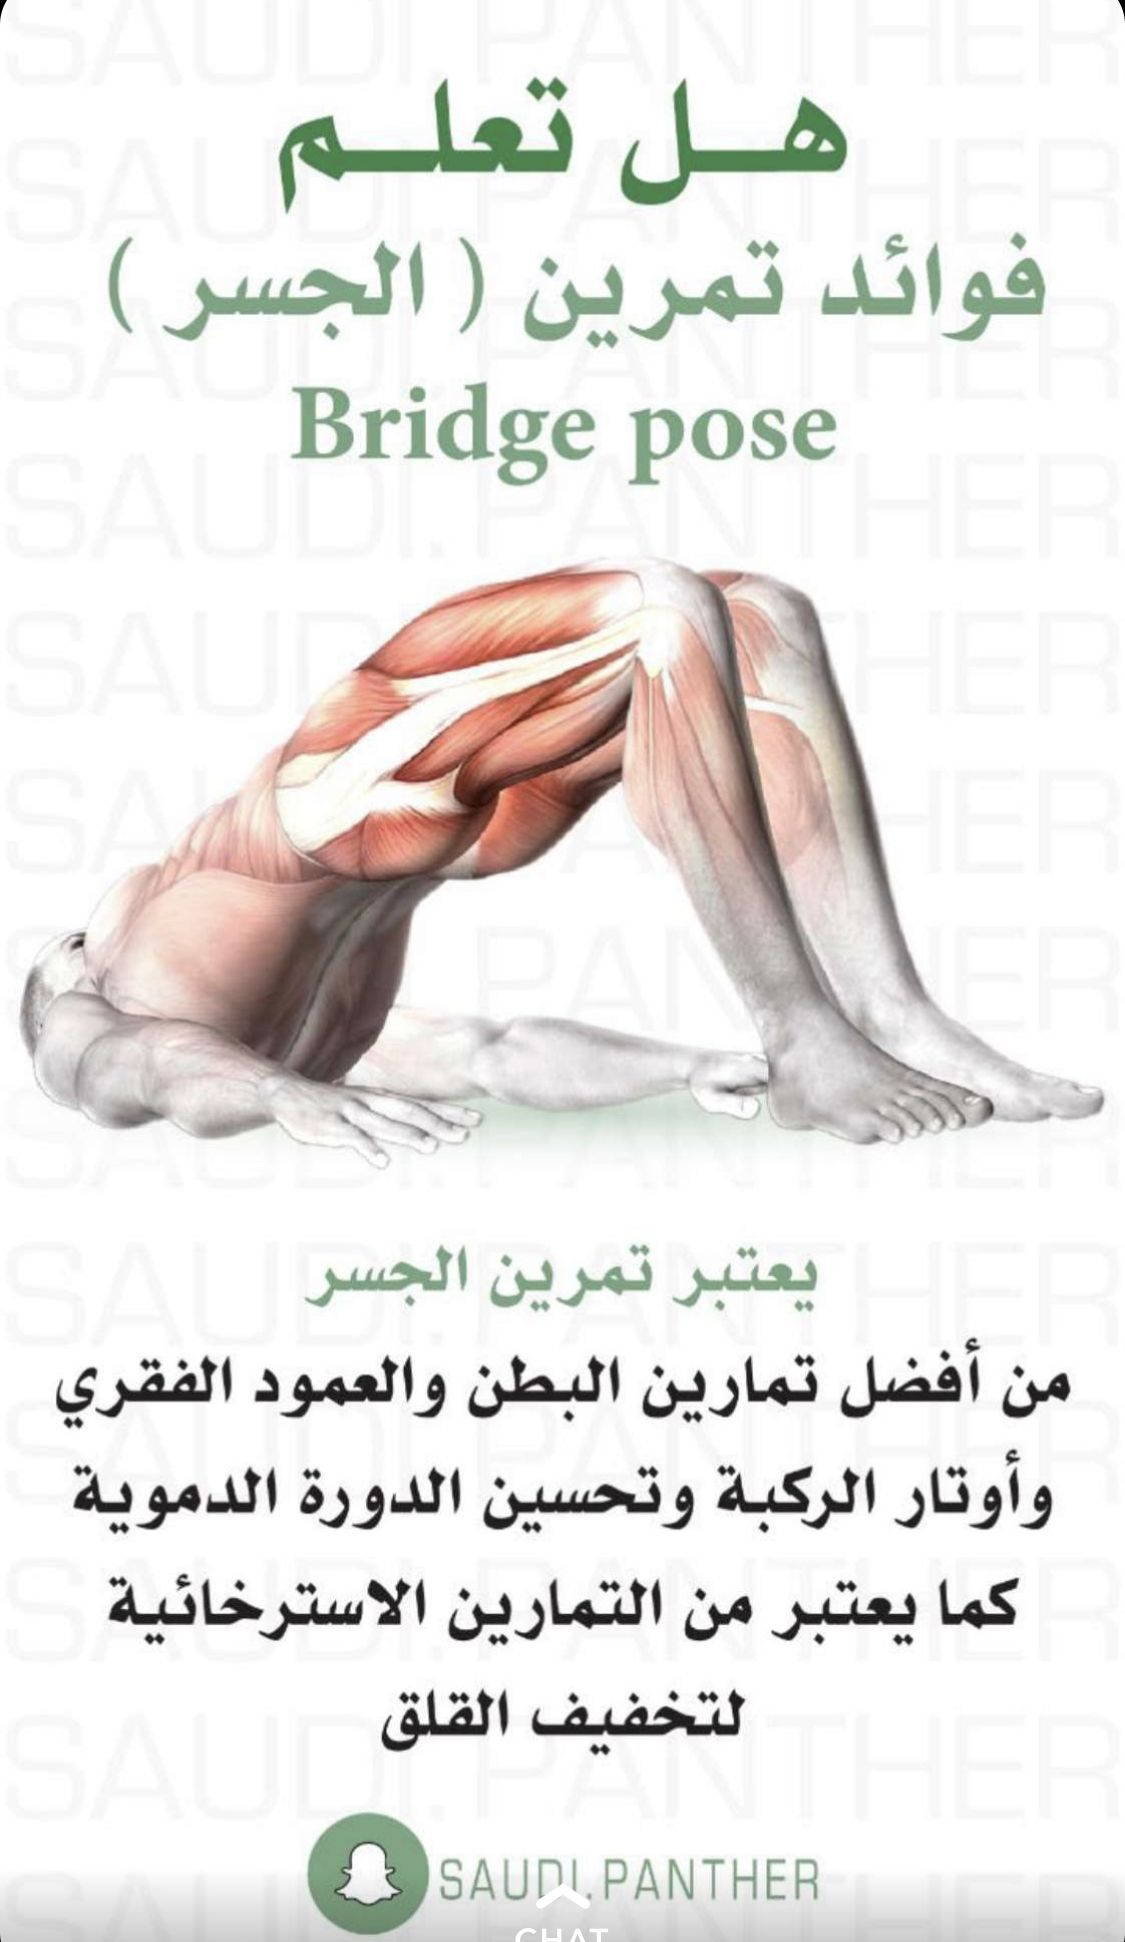 Pin By Hanen 2580 On Arabic Books Health Facts Fitness Gym Workout For Beginners Gym Workout Tips